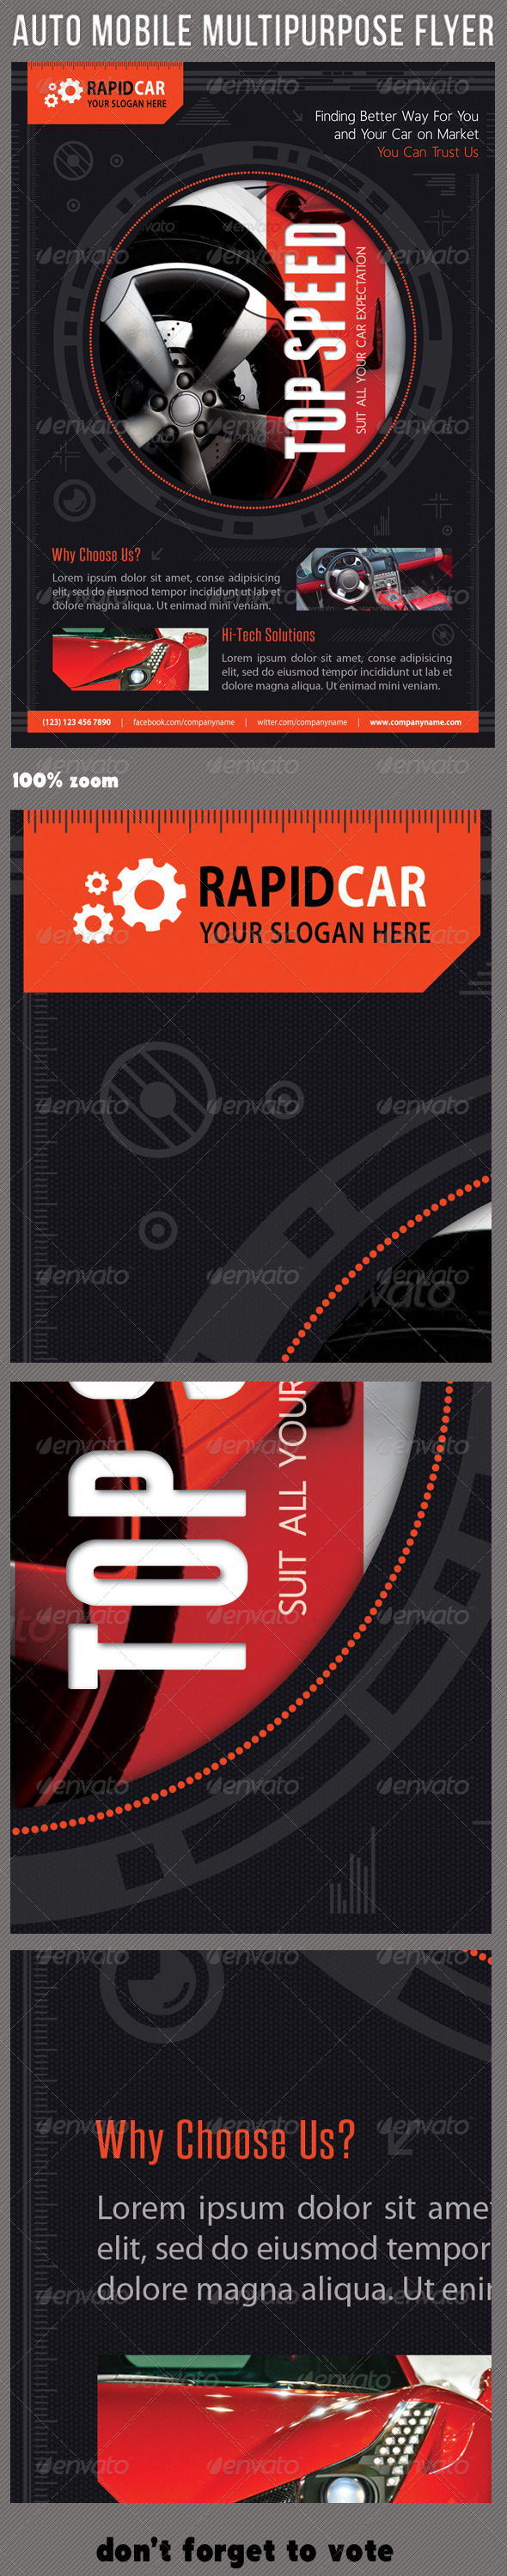 Auto Mobile Multipurpose Flyer 01 - Corporate Flyers